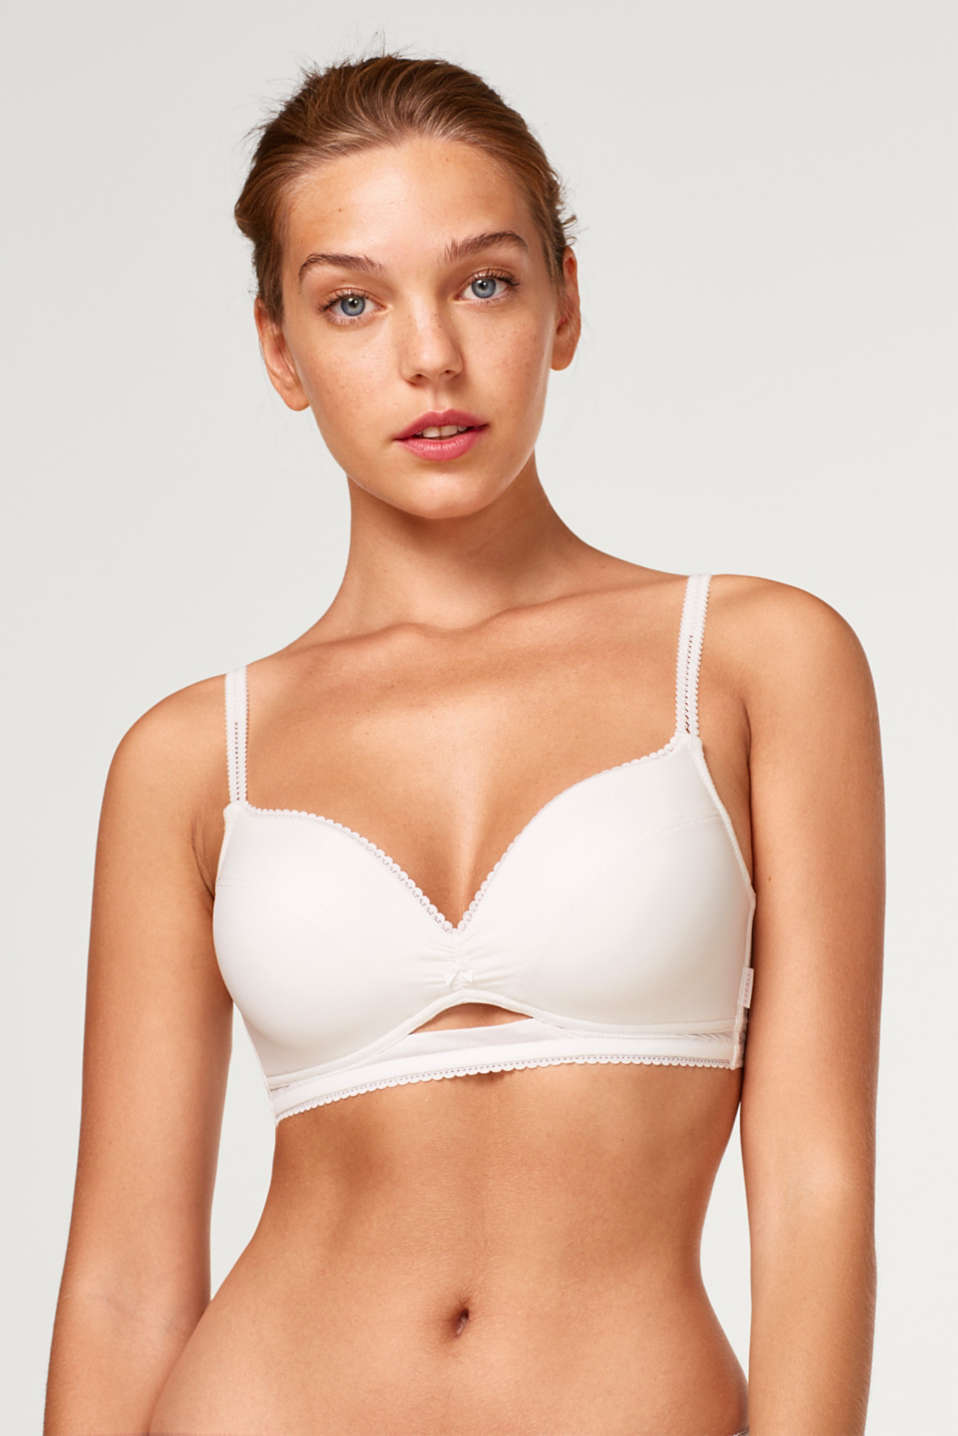 Esprit - Padded, non-wired bra with textured microfibre